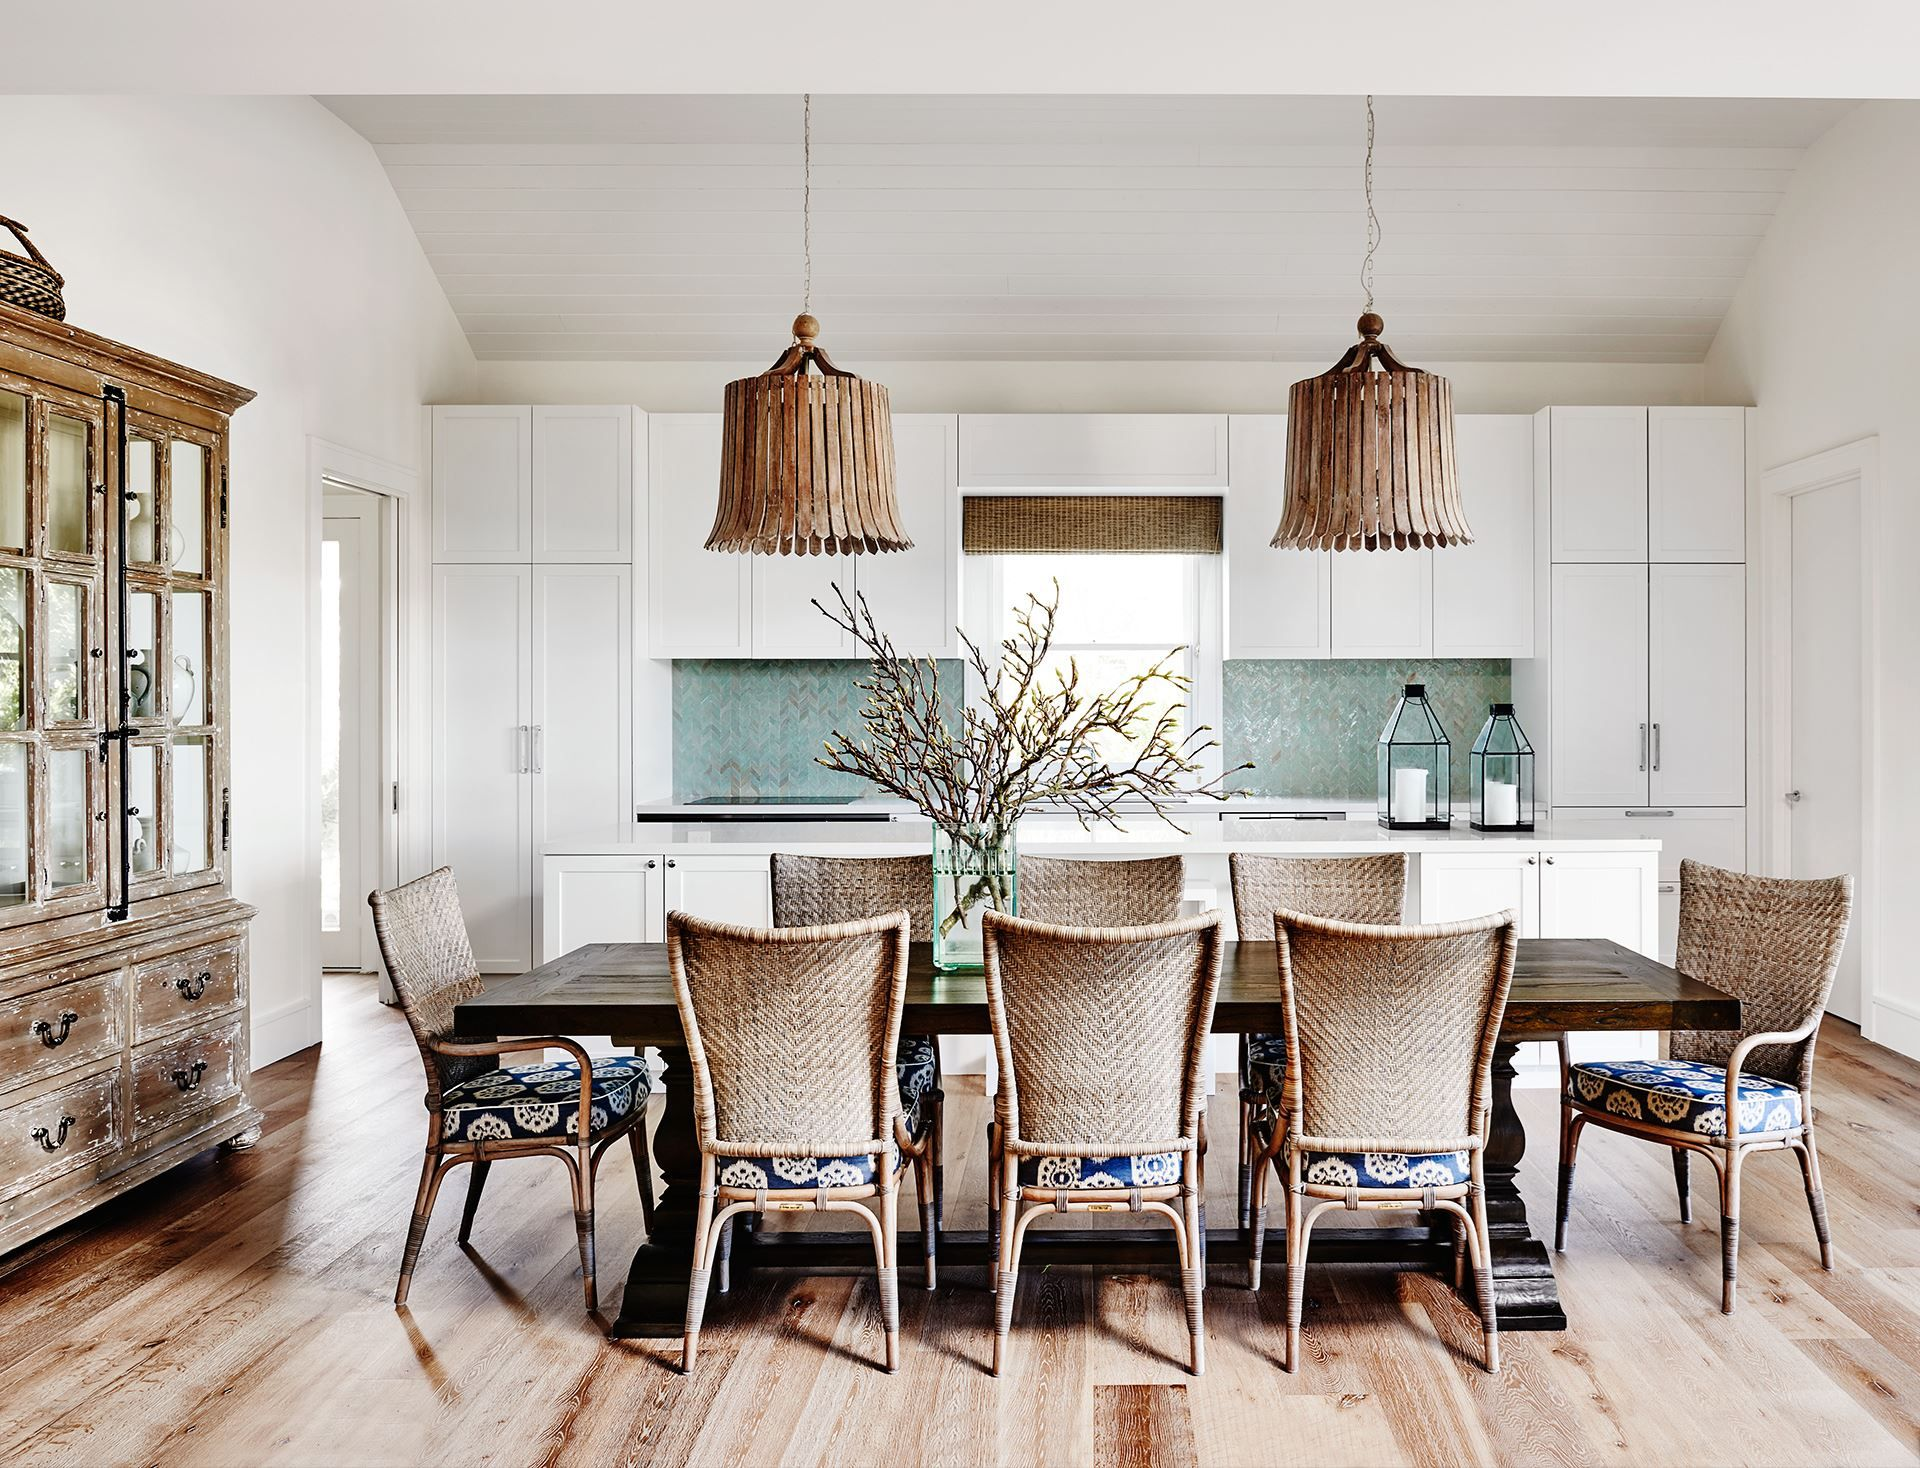 Dining room from Hamptonsstyle holiday home on Victoria's